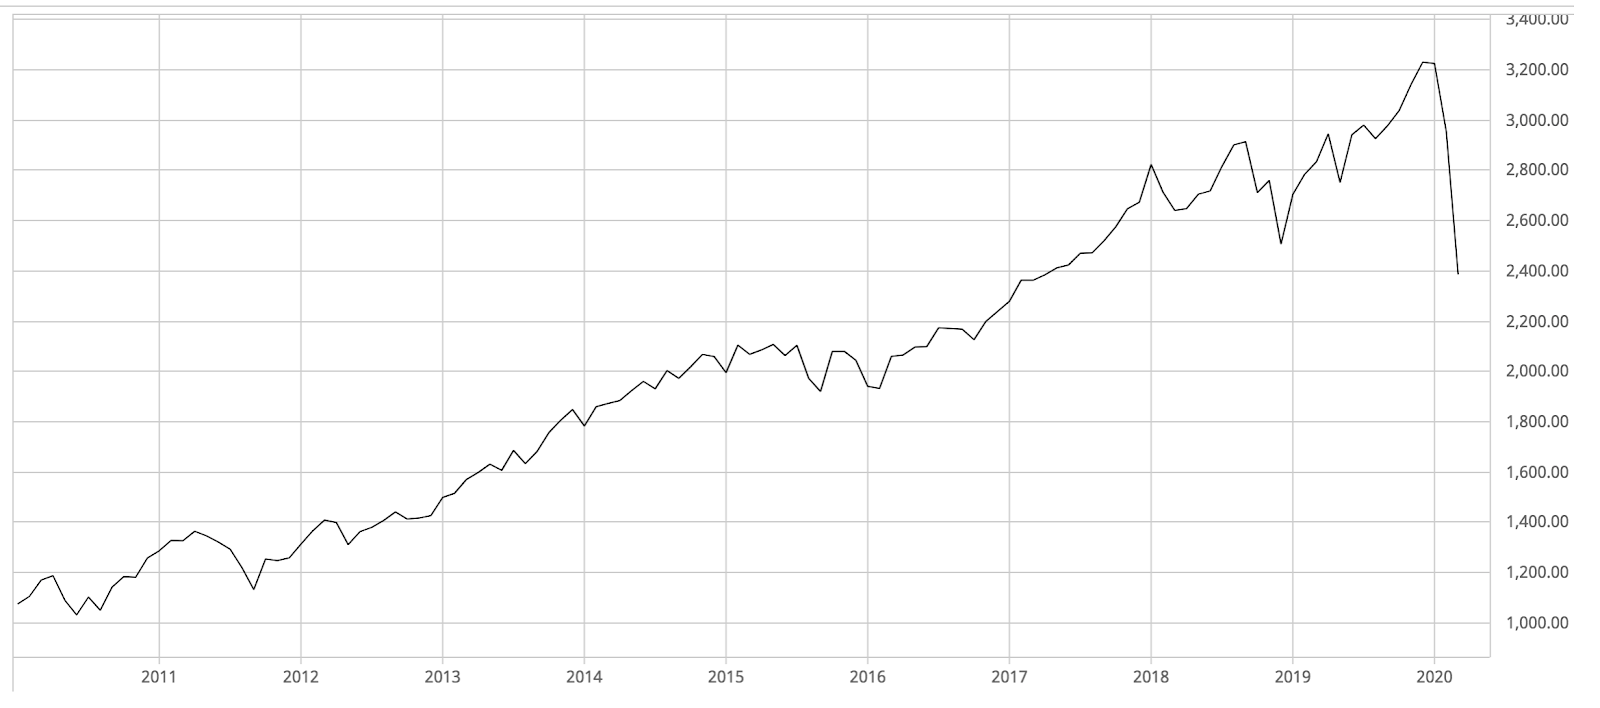 10 Year graph of the S&P 500 between March 2010 and March 2020